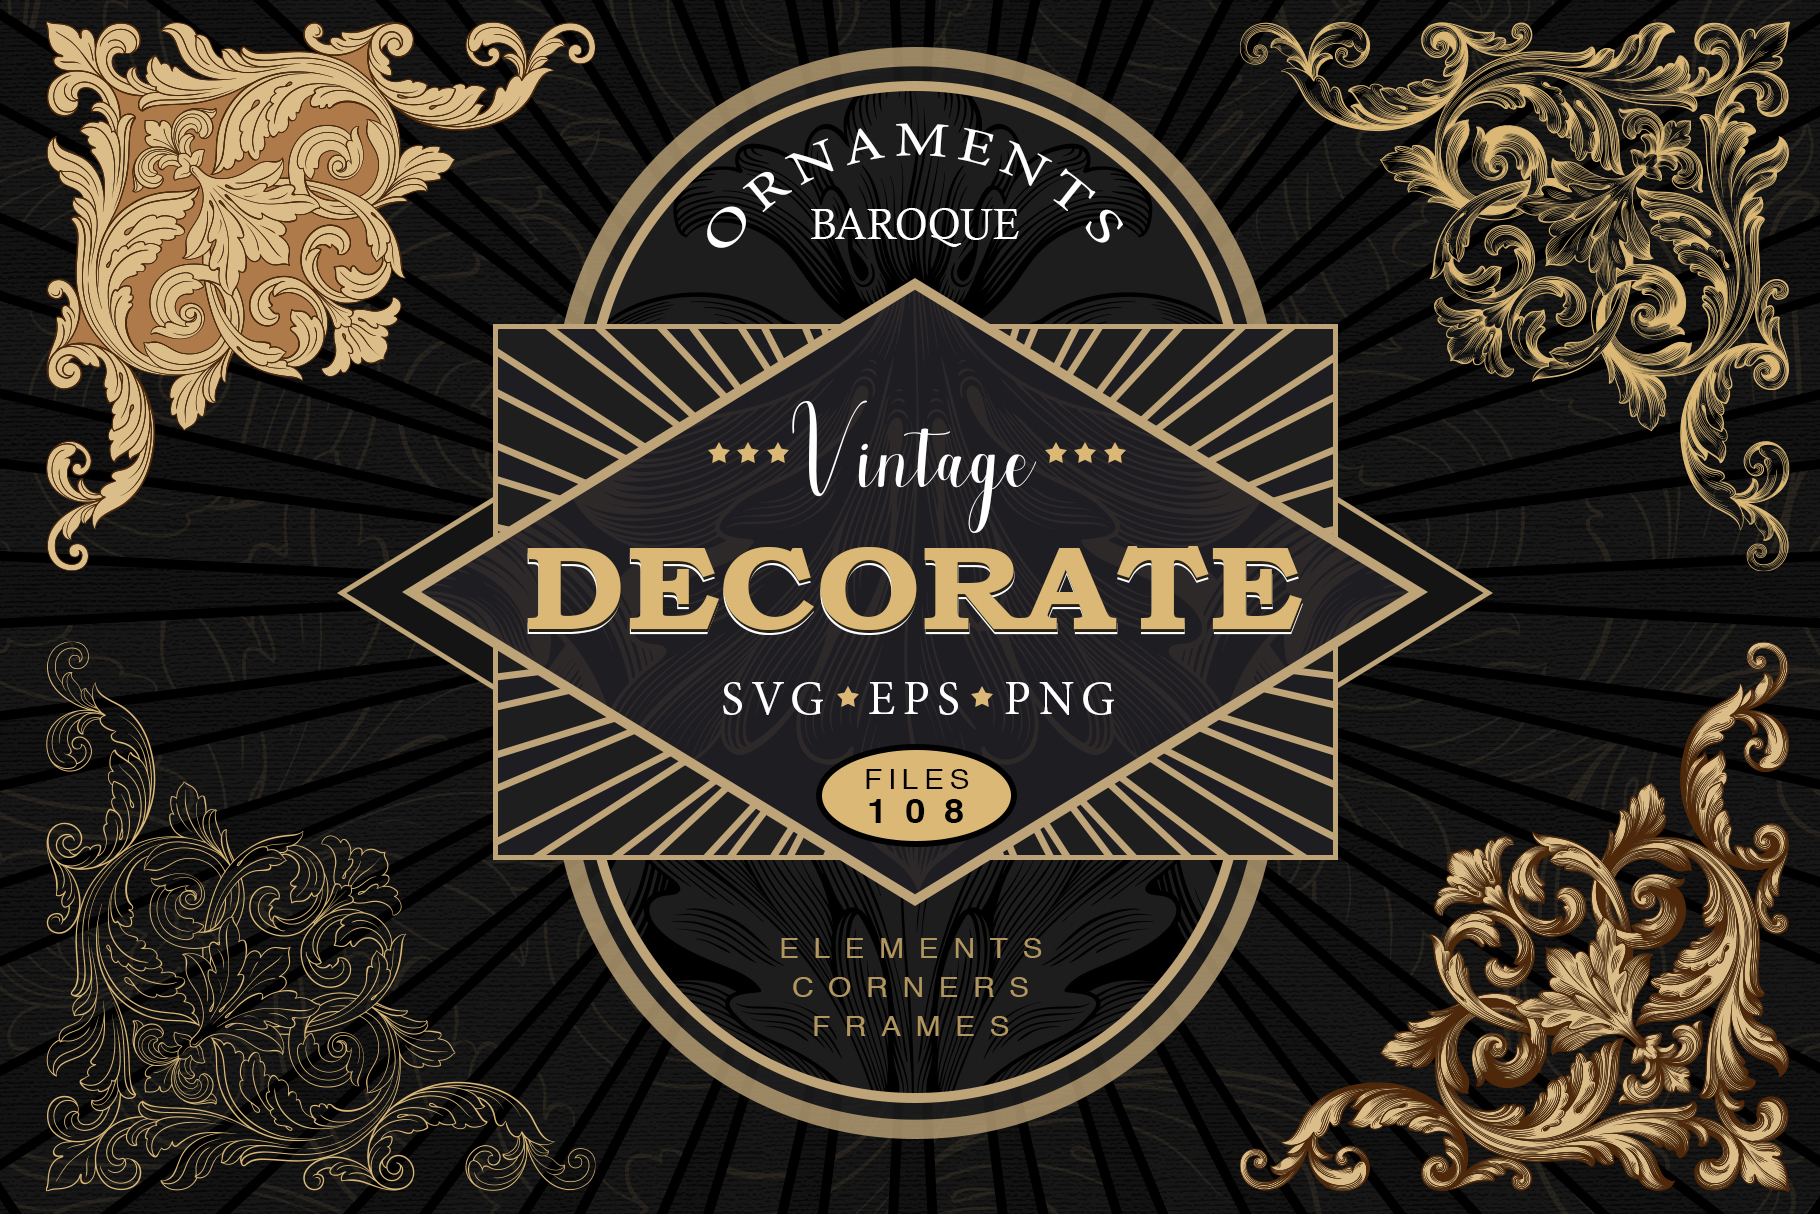 Download Free Page Decoration Ornate Vintage Graphic By Ornamentstock SVG Cut Files